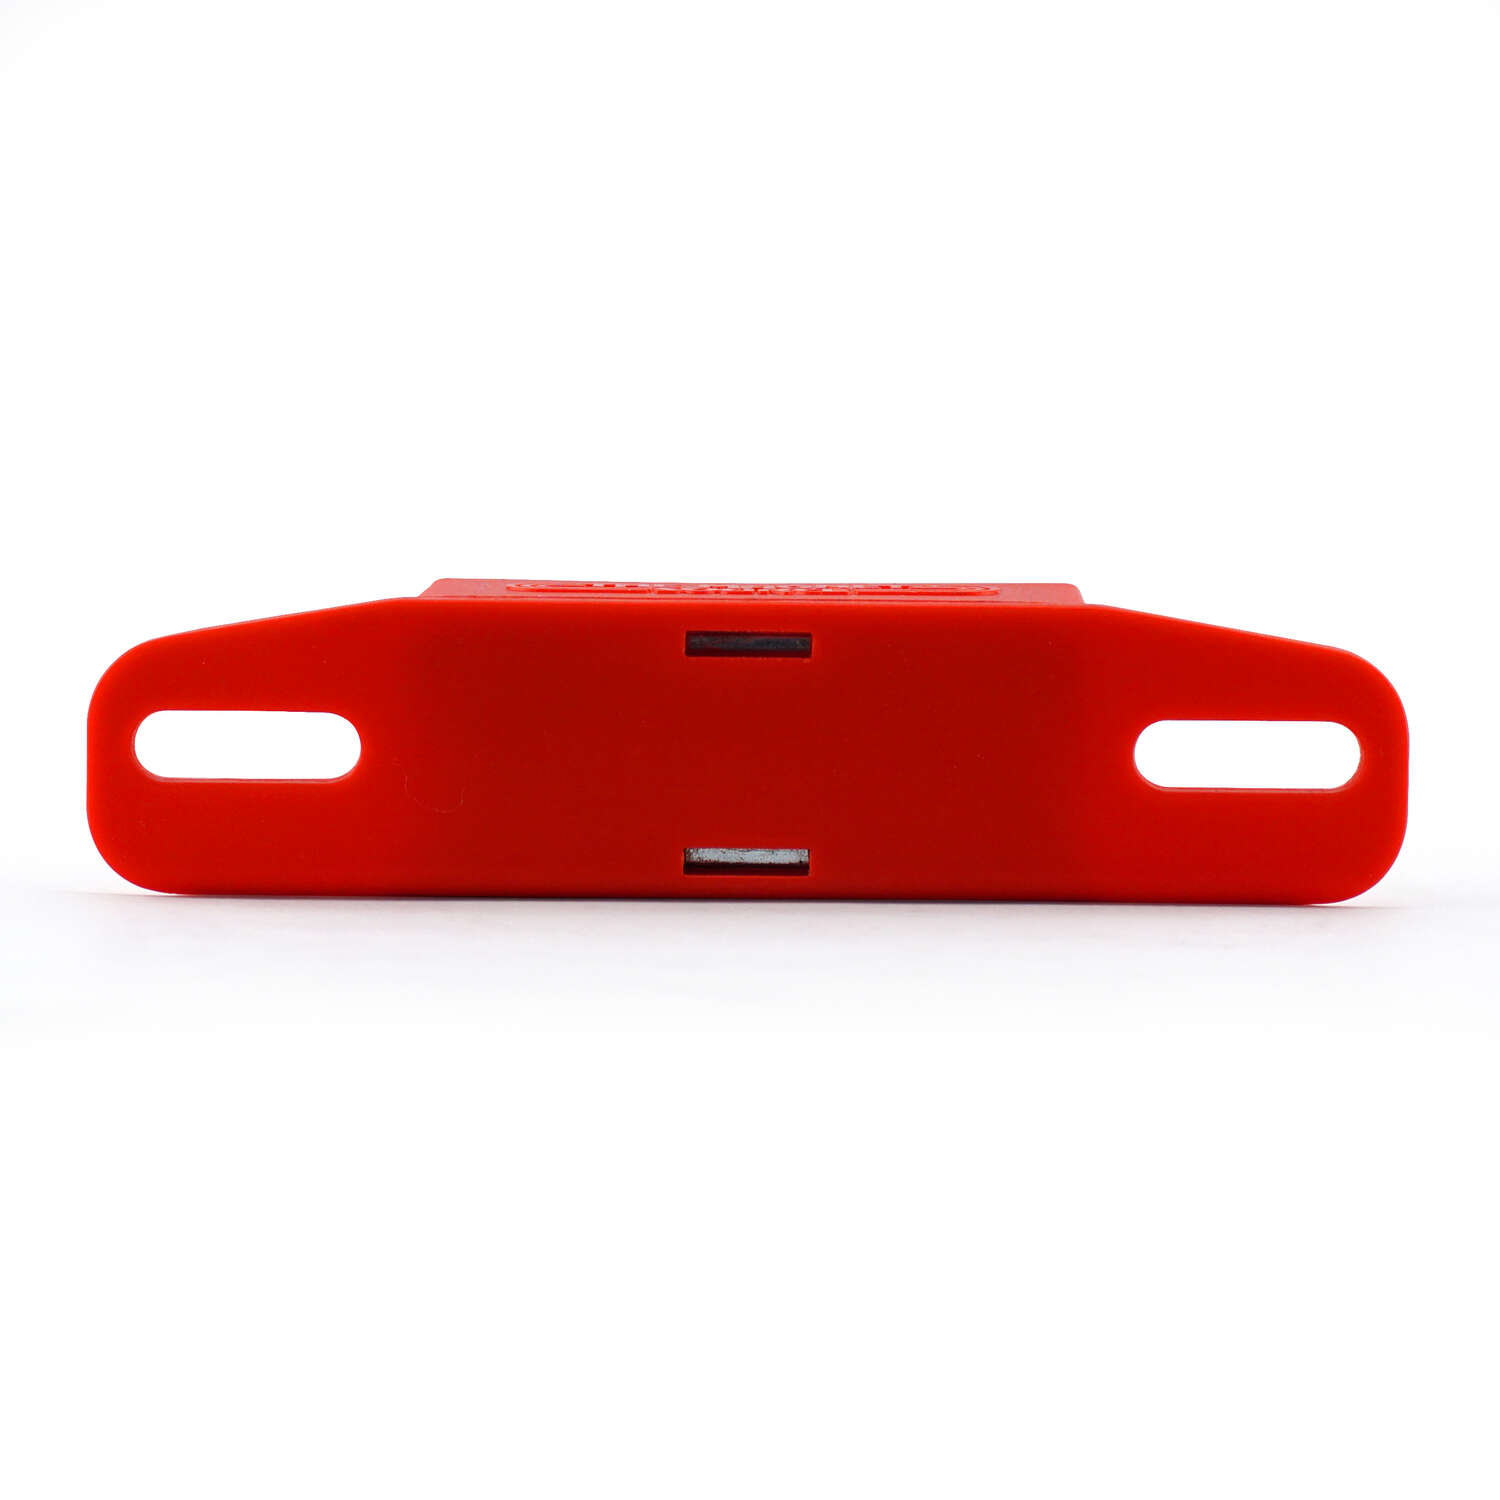 Master Magnetics  The Magnet Source  4.25 in. Ceramic  50 lb. 3.4 MGOe Latch Magnet  1 pc. Red